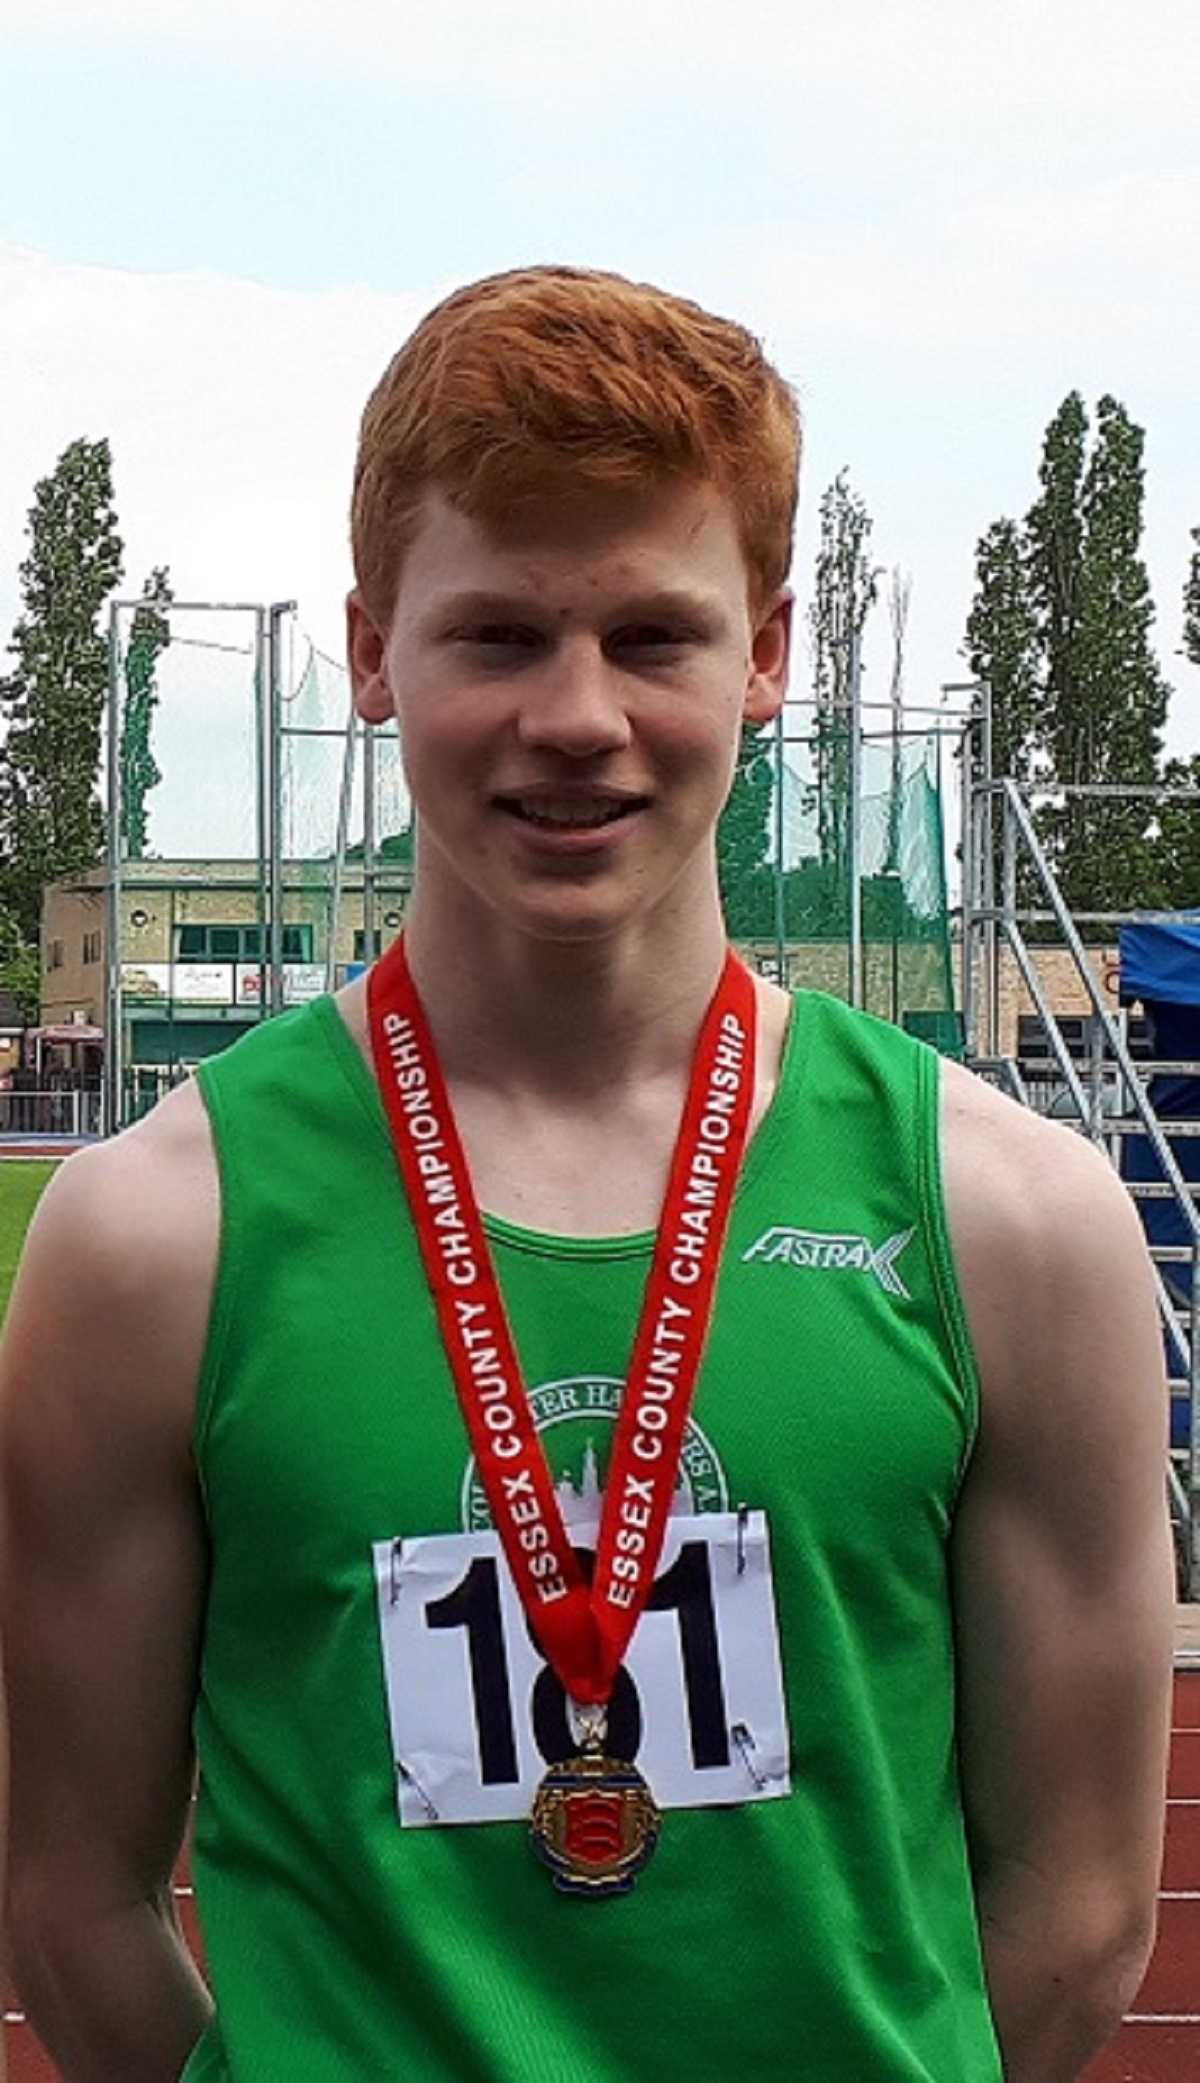 Jubilant - Colchester Harriers sprinter Charlie Dobson won 200m gold at the Essex Championships